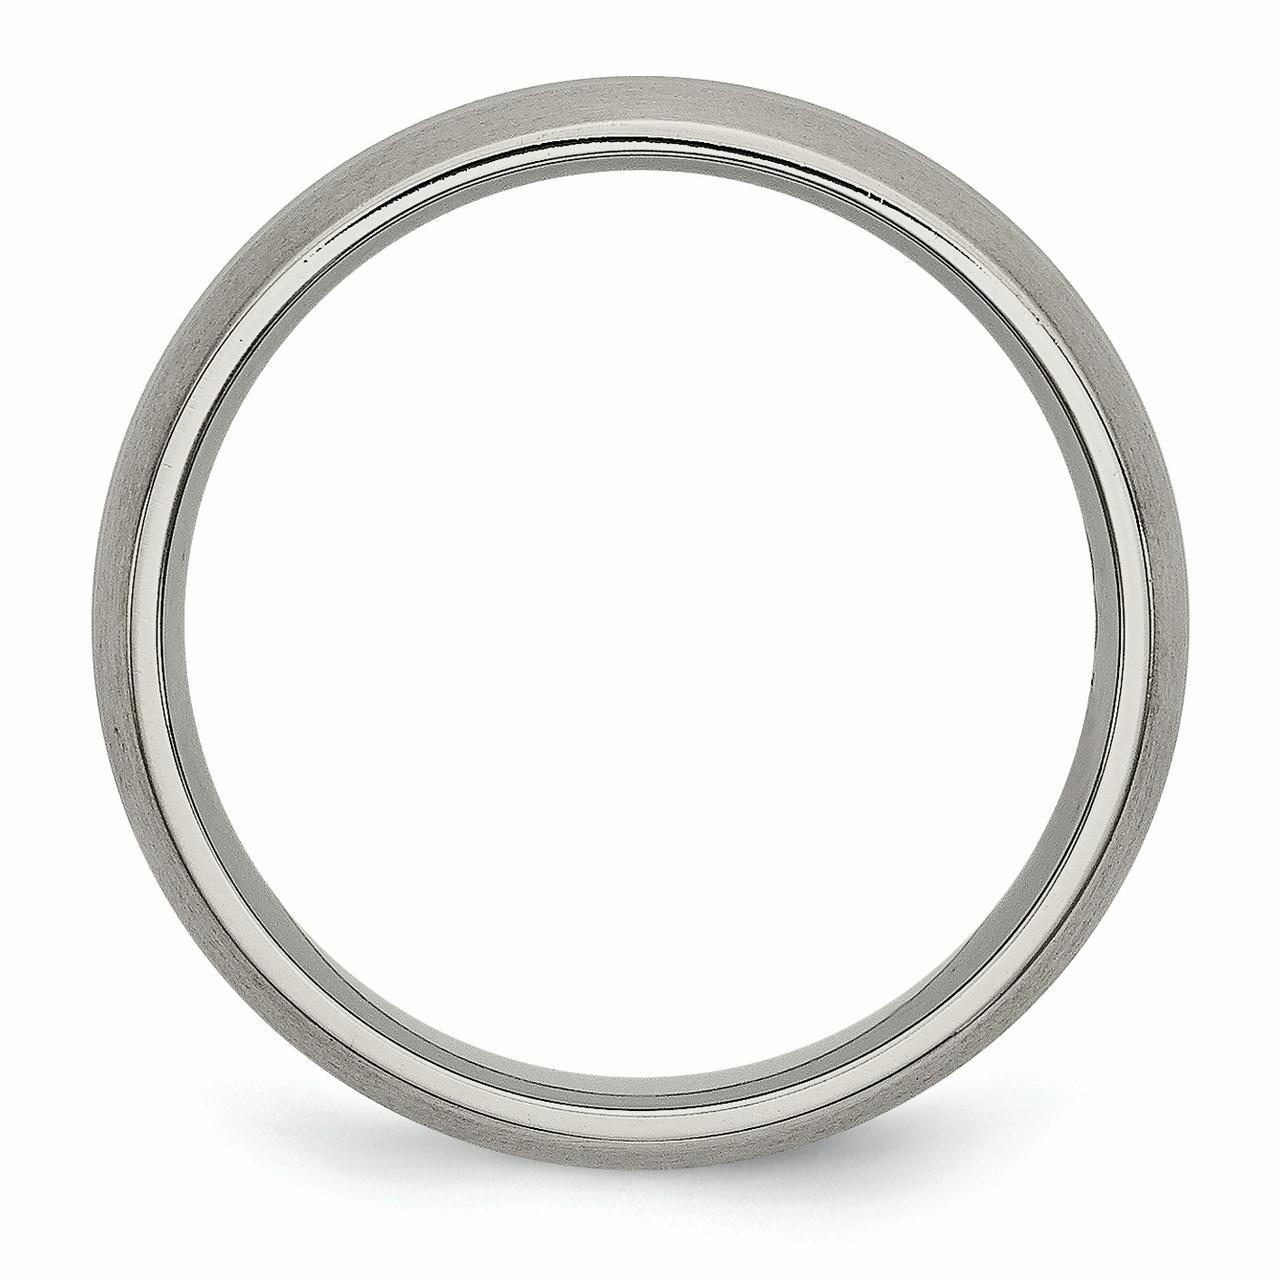 Titanium Grooved 6mm Brushed and Polished Band Size 7.5 - image 2 de 3